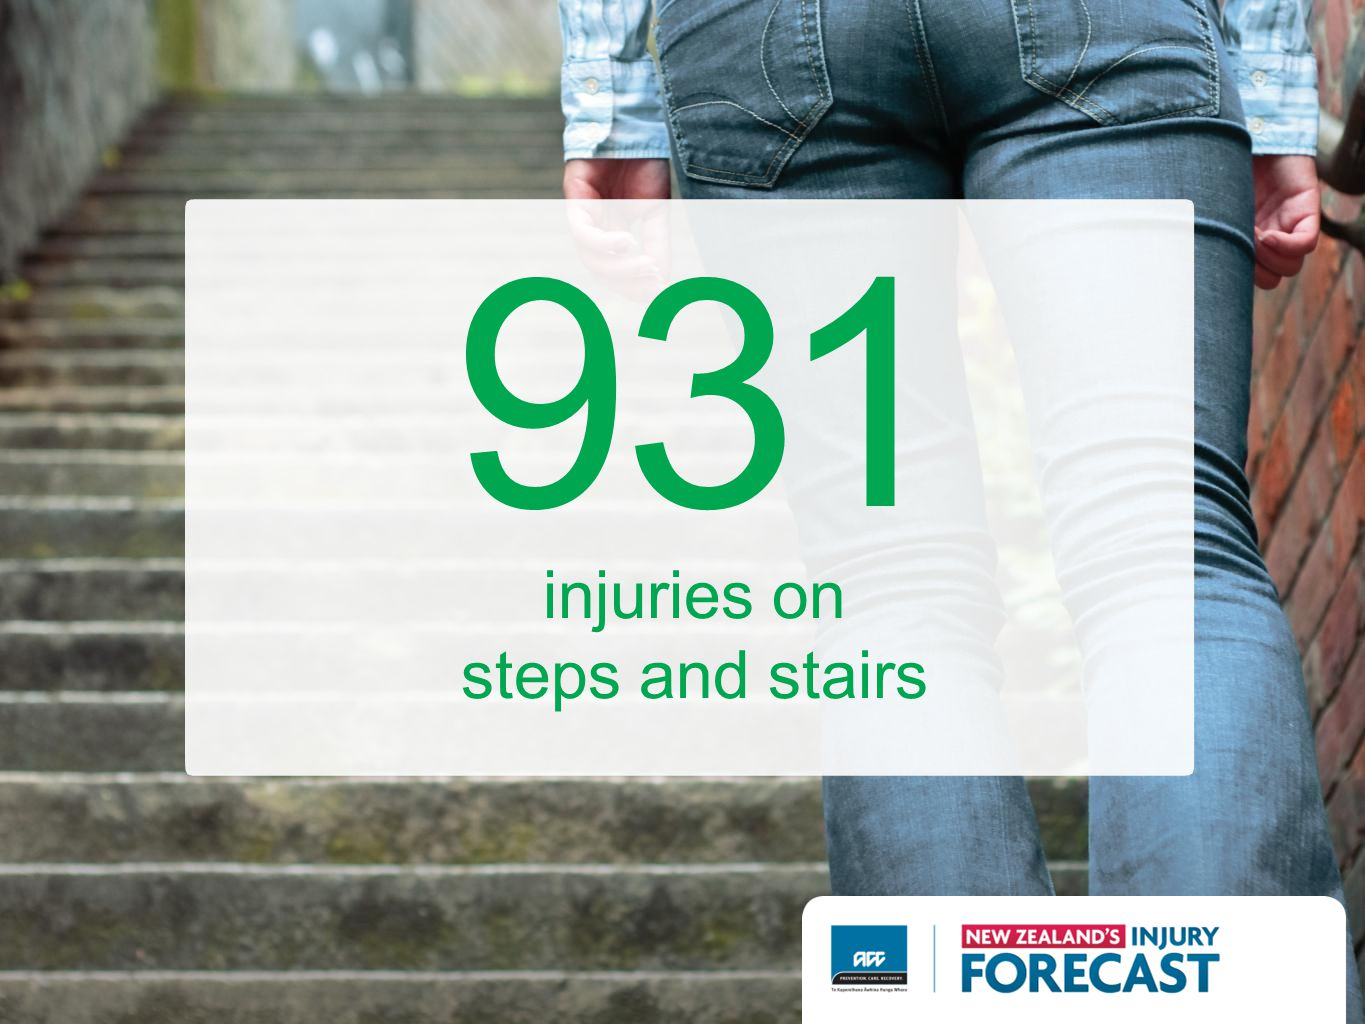 injuries on steps and stairs 931